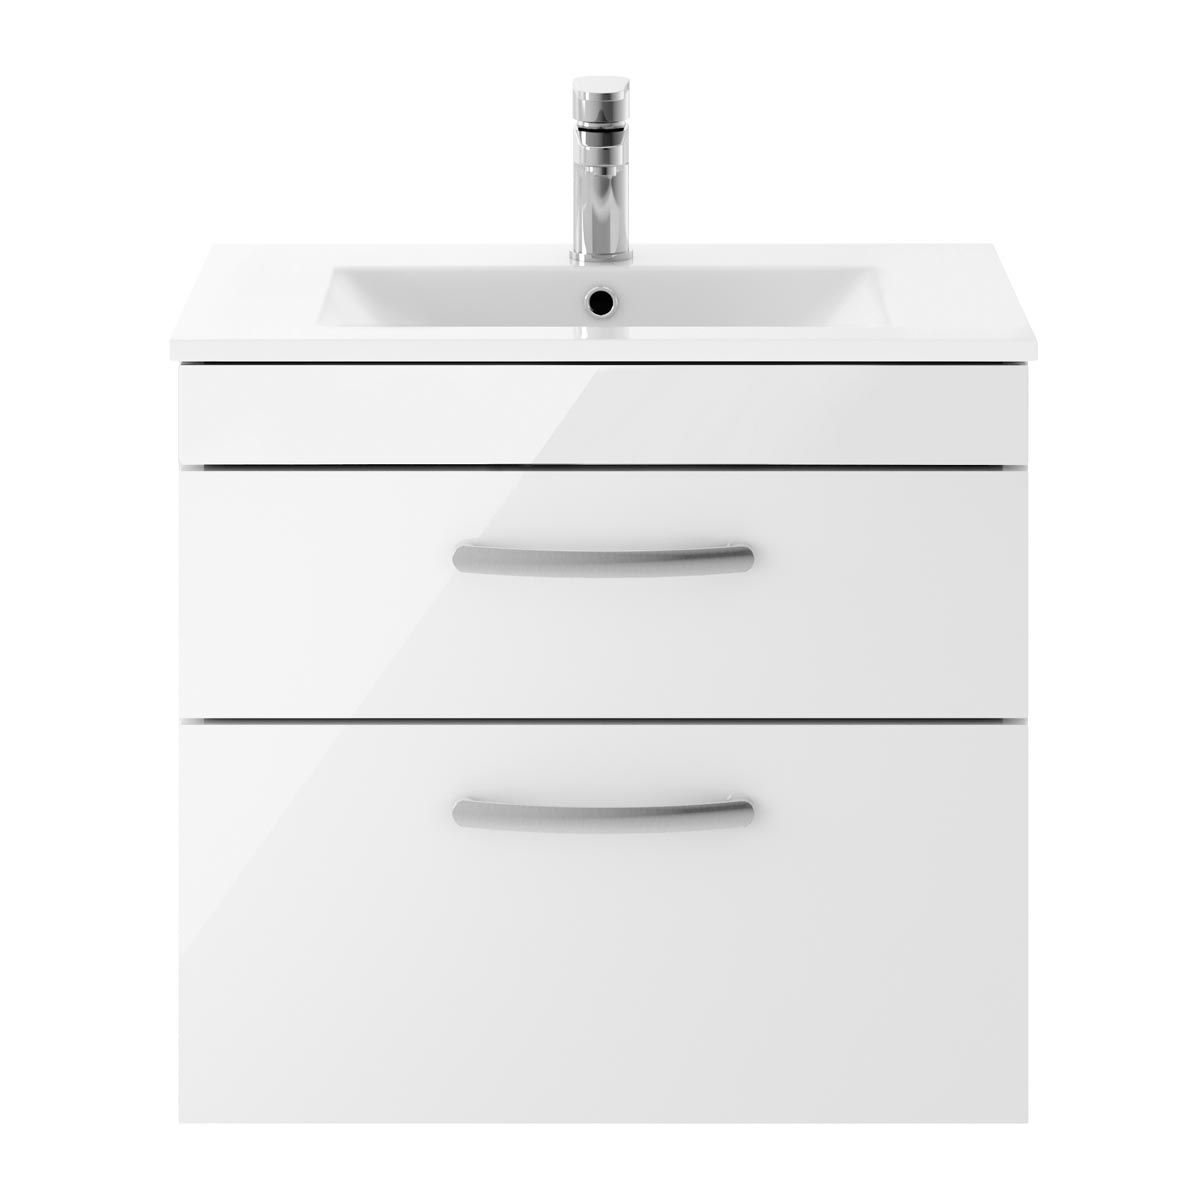 Nuie Athena Gloss White 2 Drawer Wall Hung Vanity Unit with 18mm Profile Basin 600mm